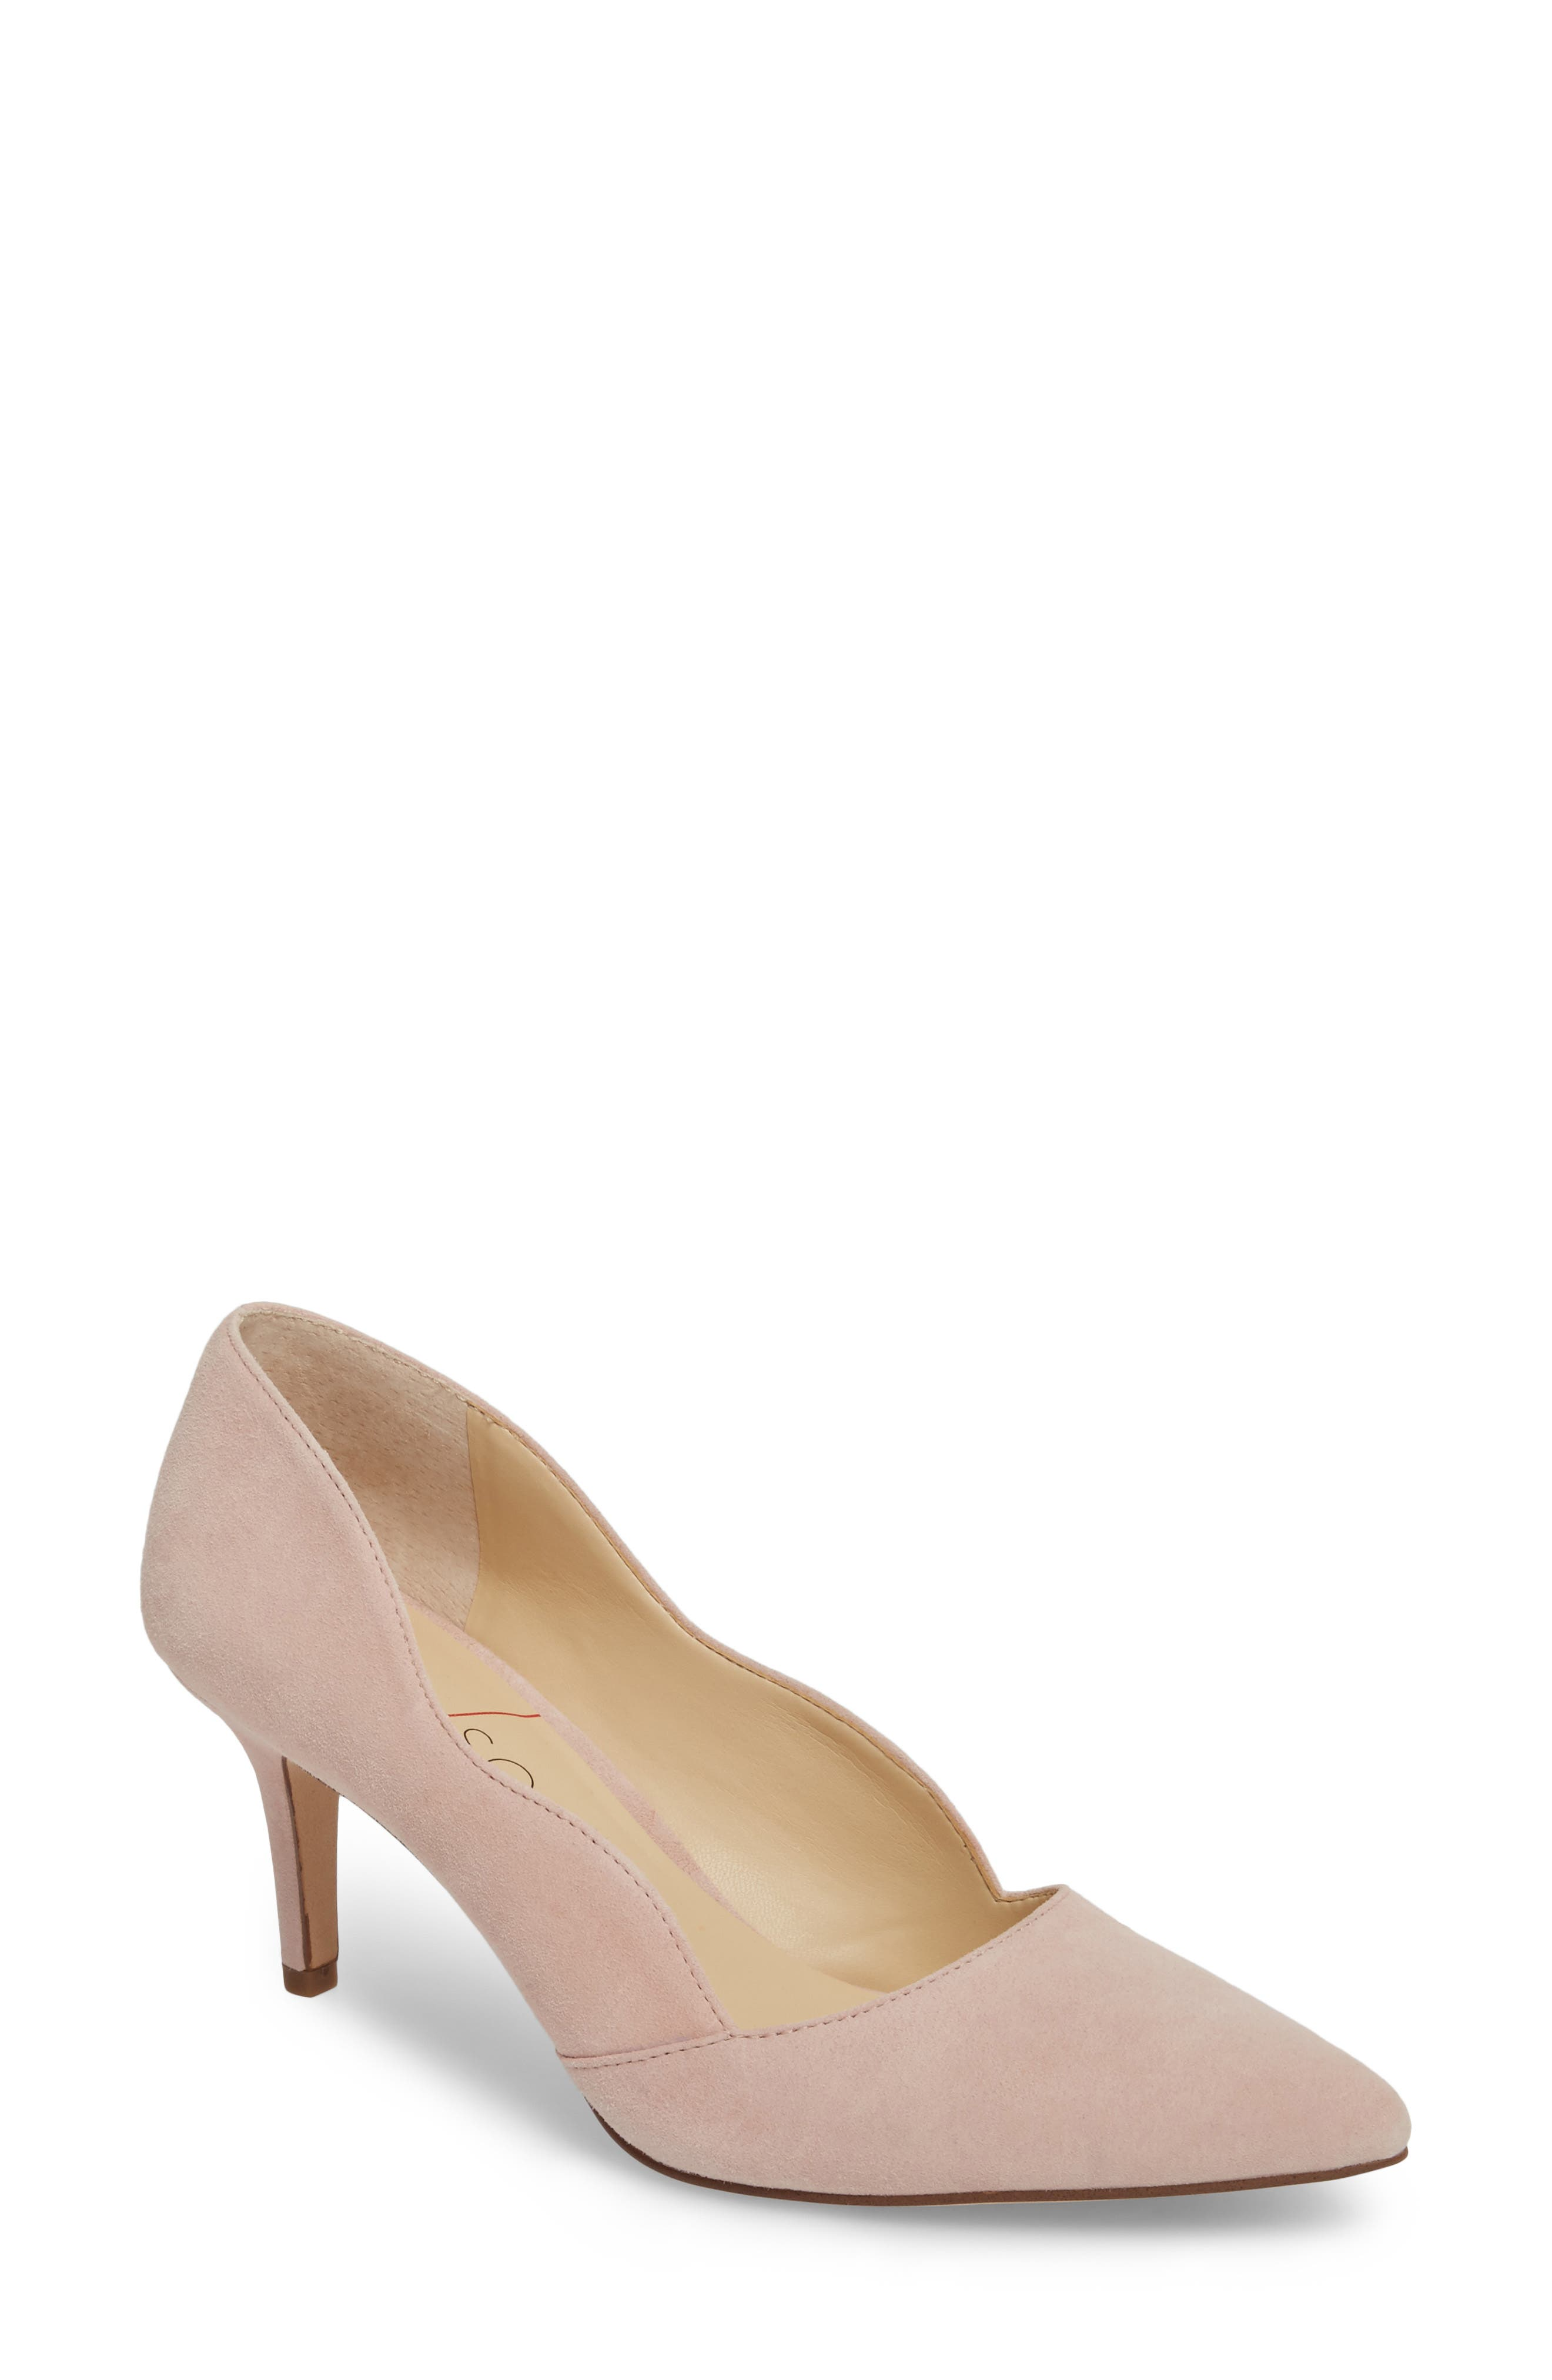 Alternate Image 1 Selected - Sole Society Edith Pump (Women)